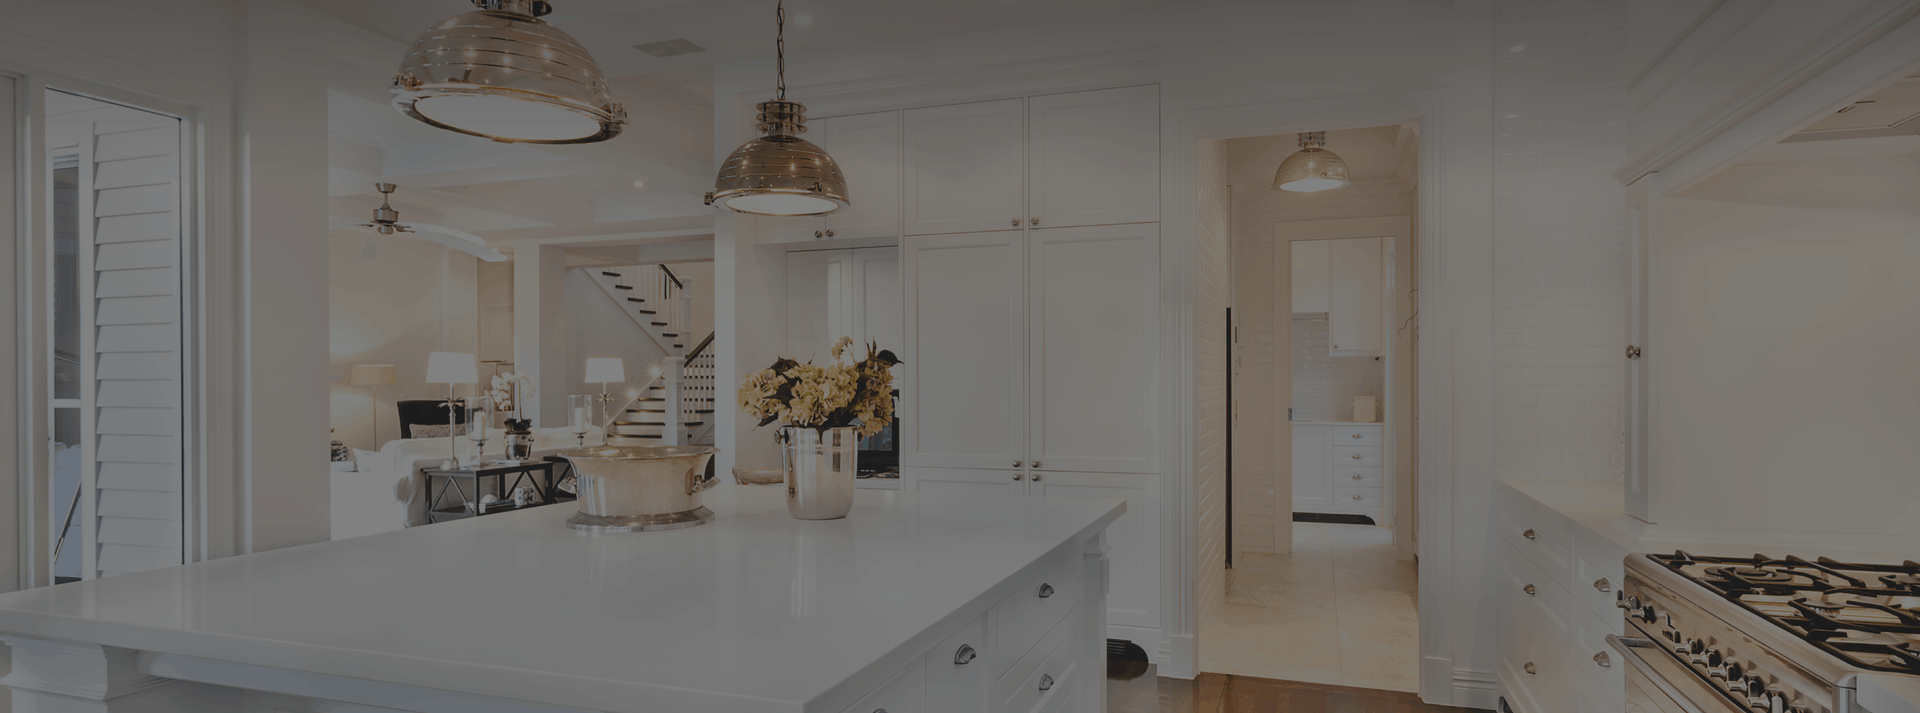 modern kitchen with white counter tops